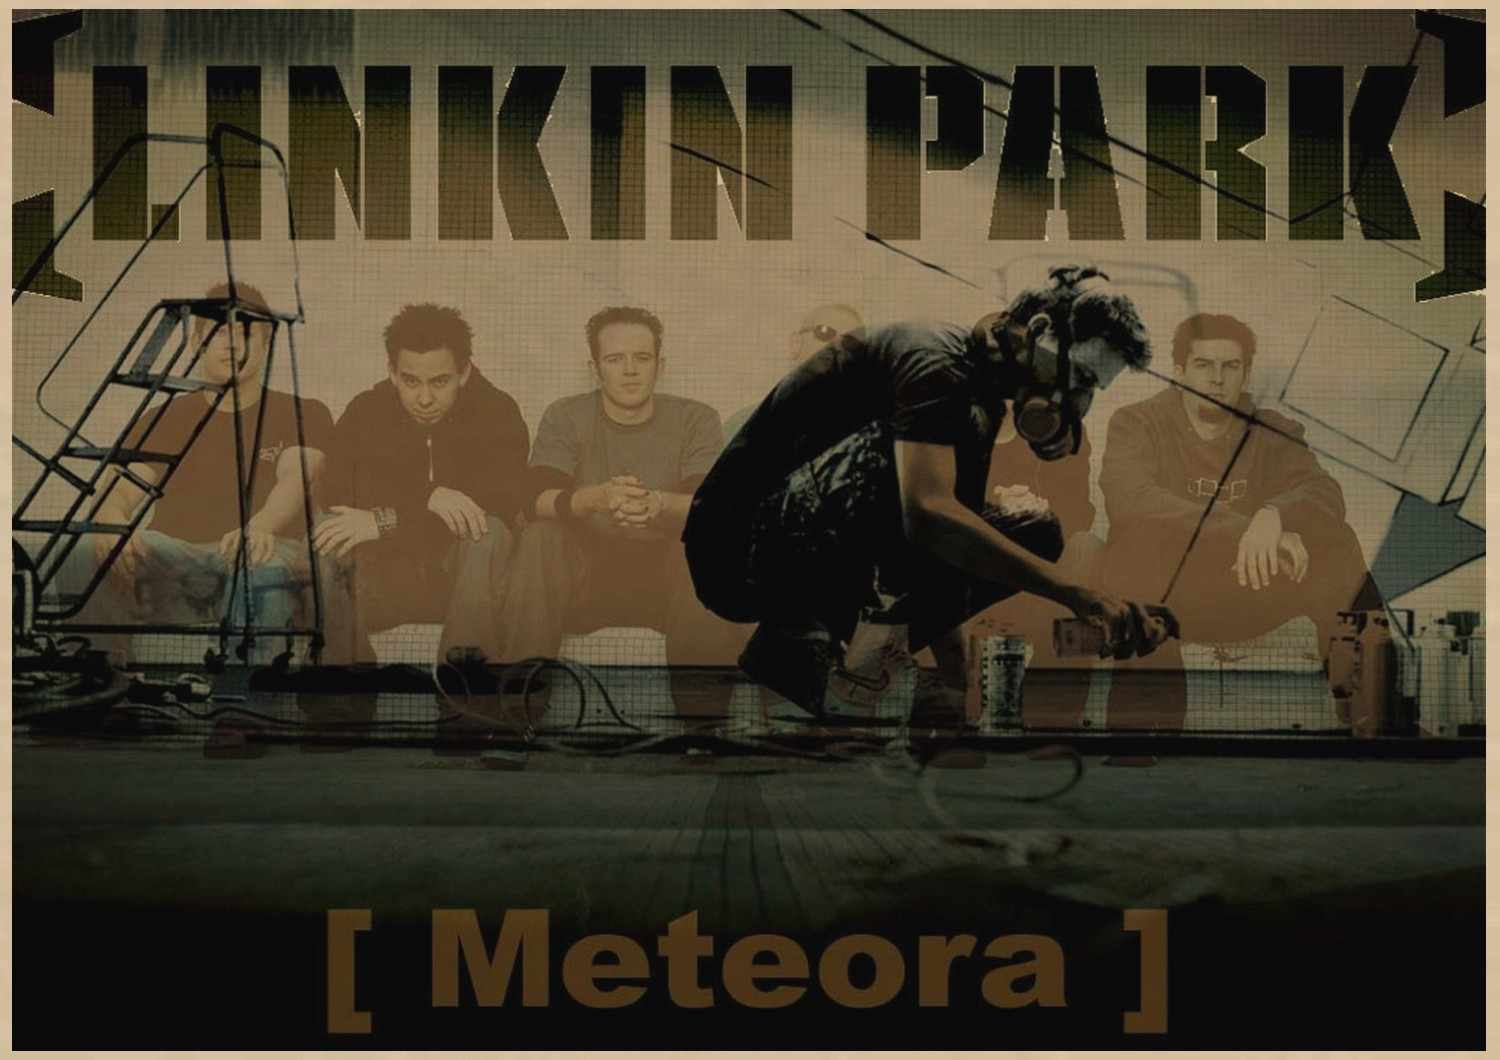 Nostalgico Rock Band Linkin Park Chester Charles Bennington kraft Manifesti di carta Musica Europea e Americana Cafe bar poster A3